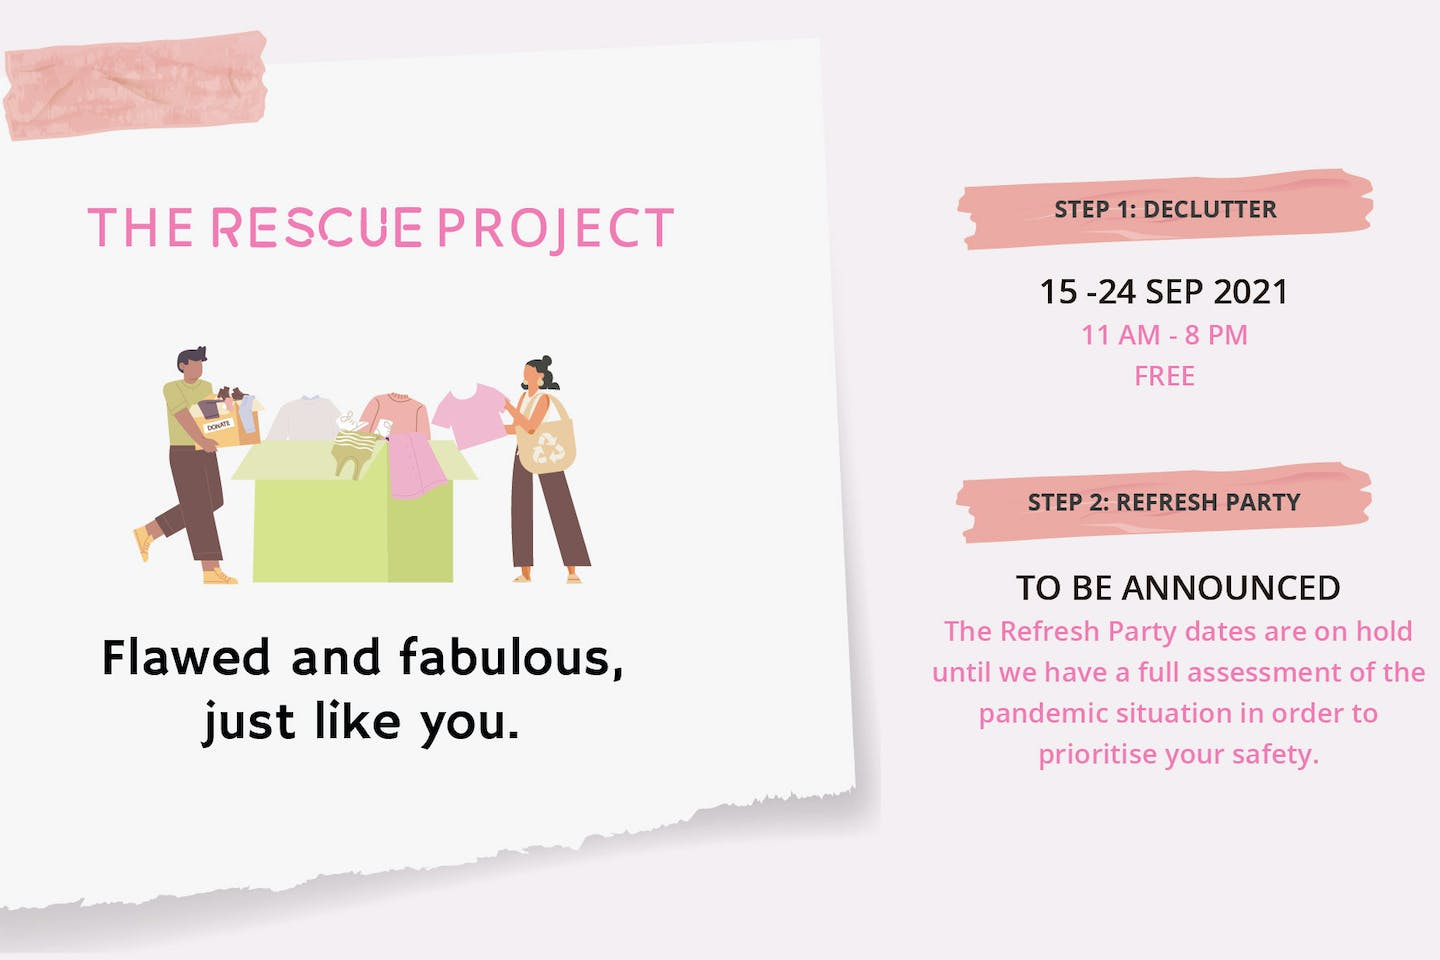 The Rescue Project